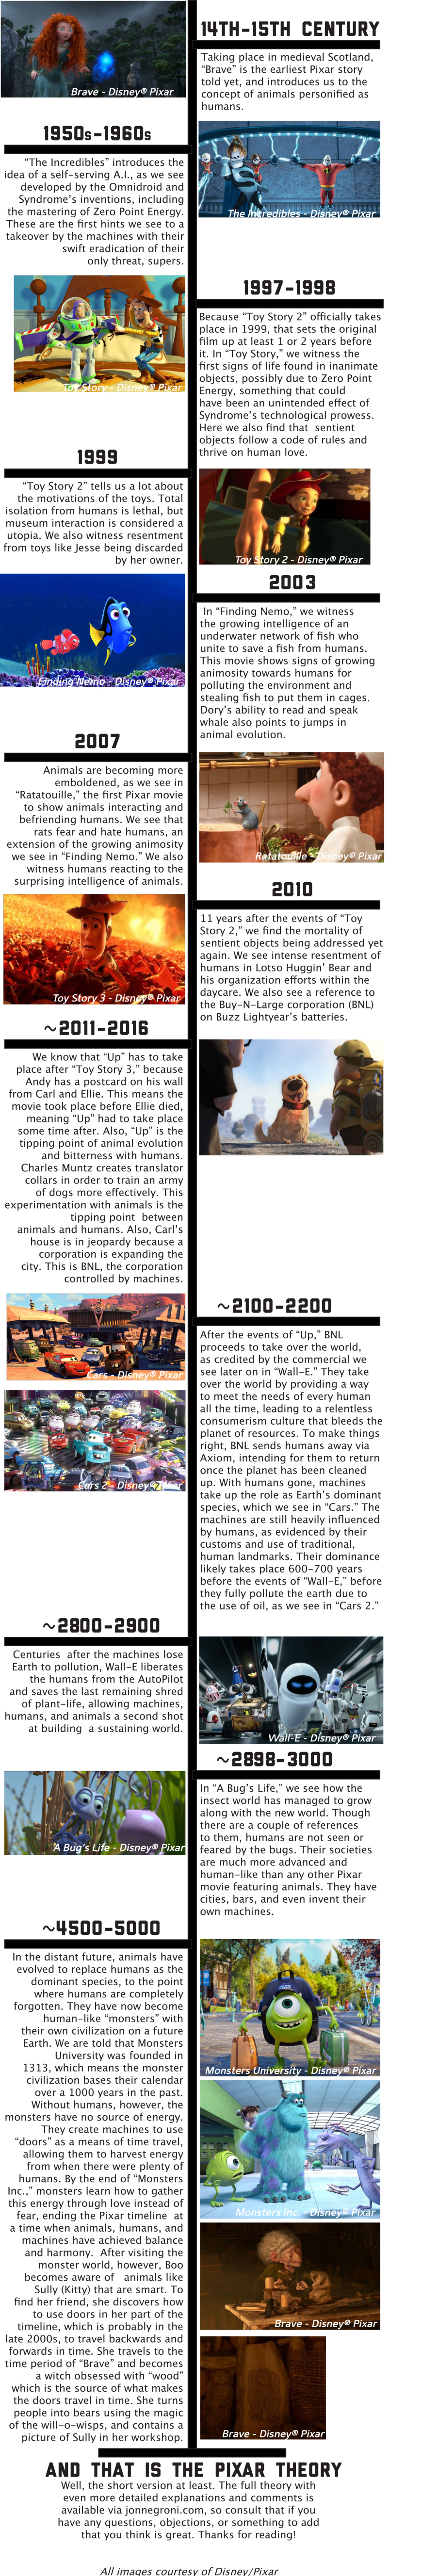 The Pixar Theory Timeline (With images) Pixar theory